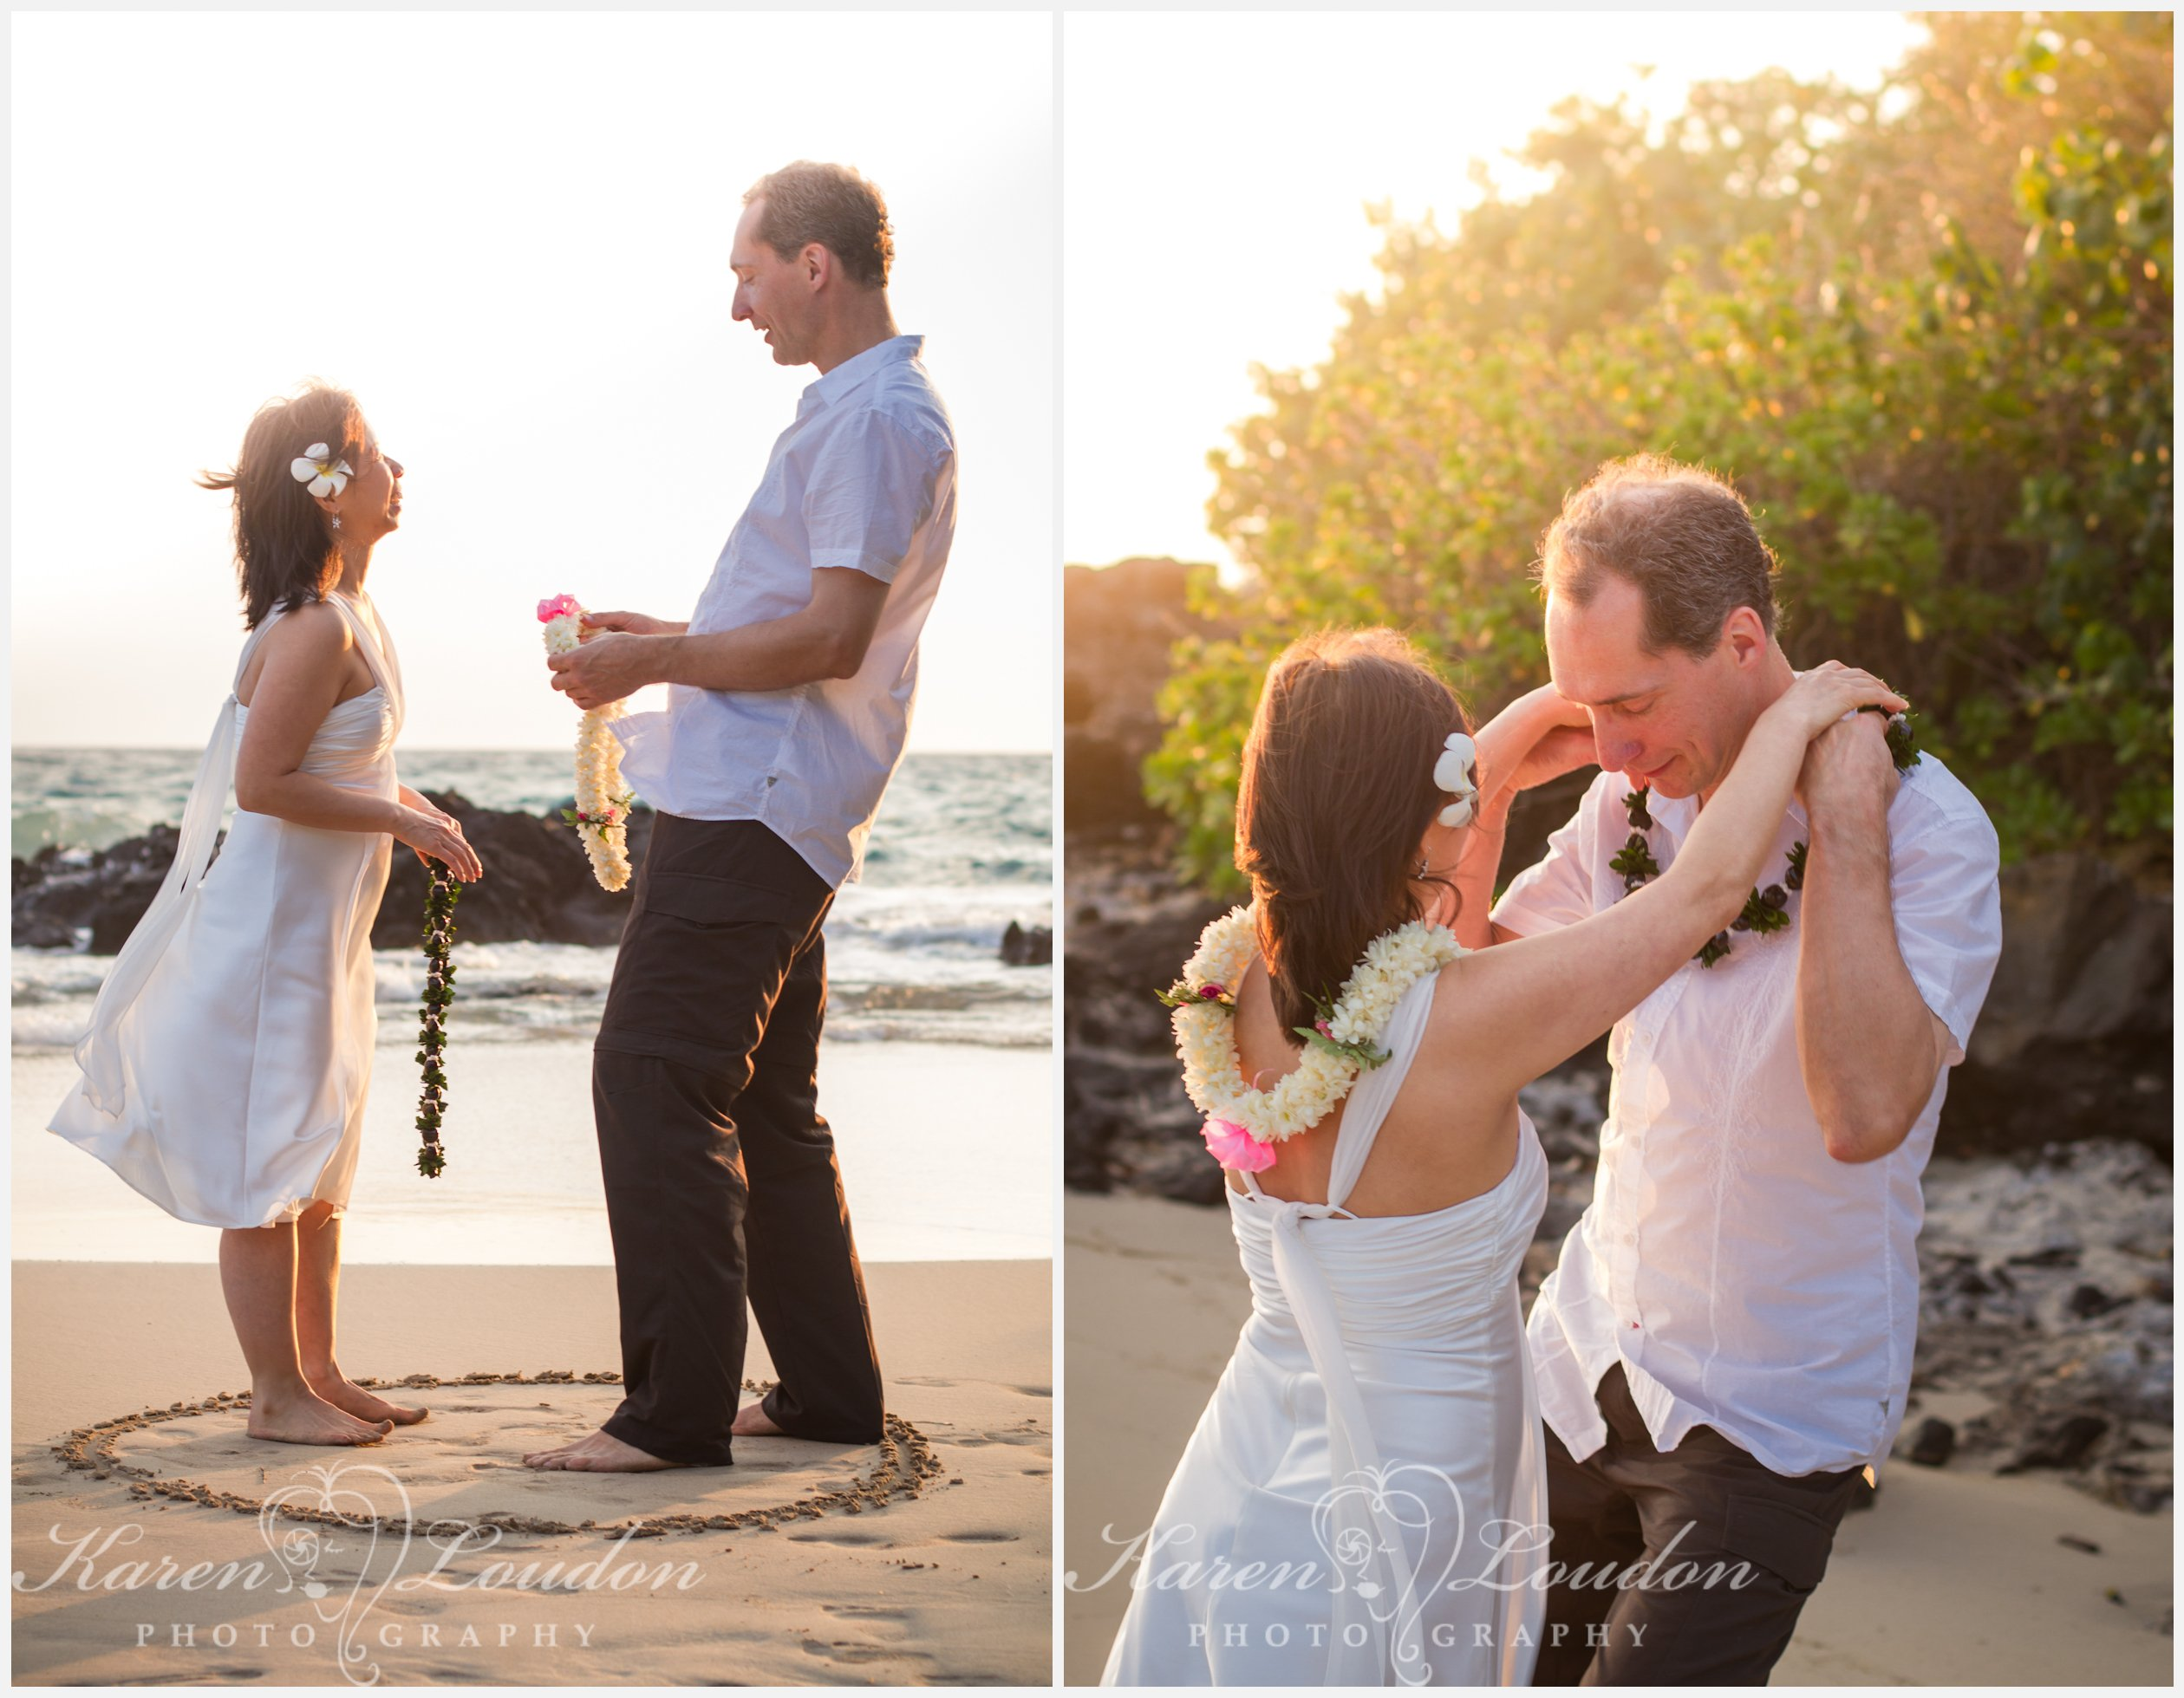 exchanging leis during a wedding at Hapuna Beach